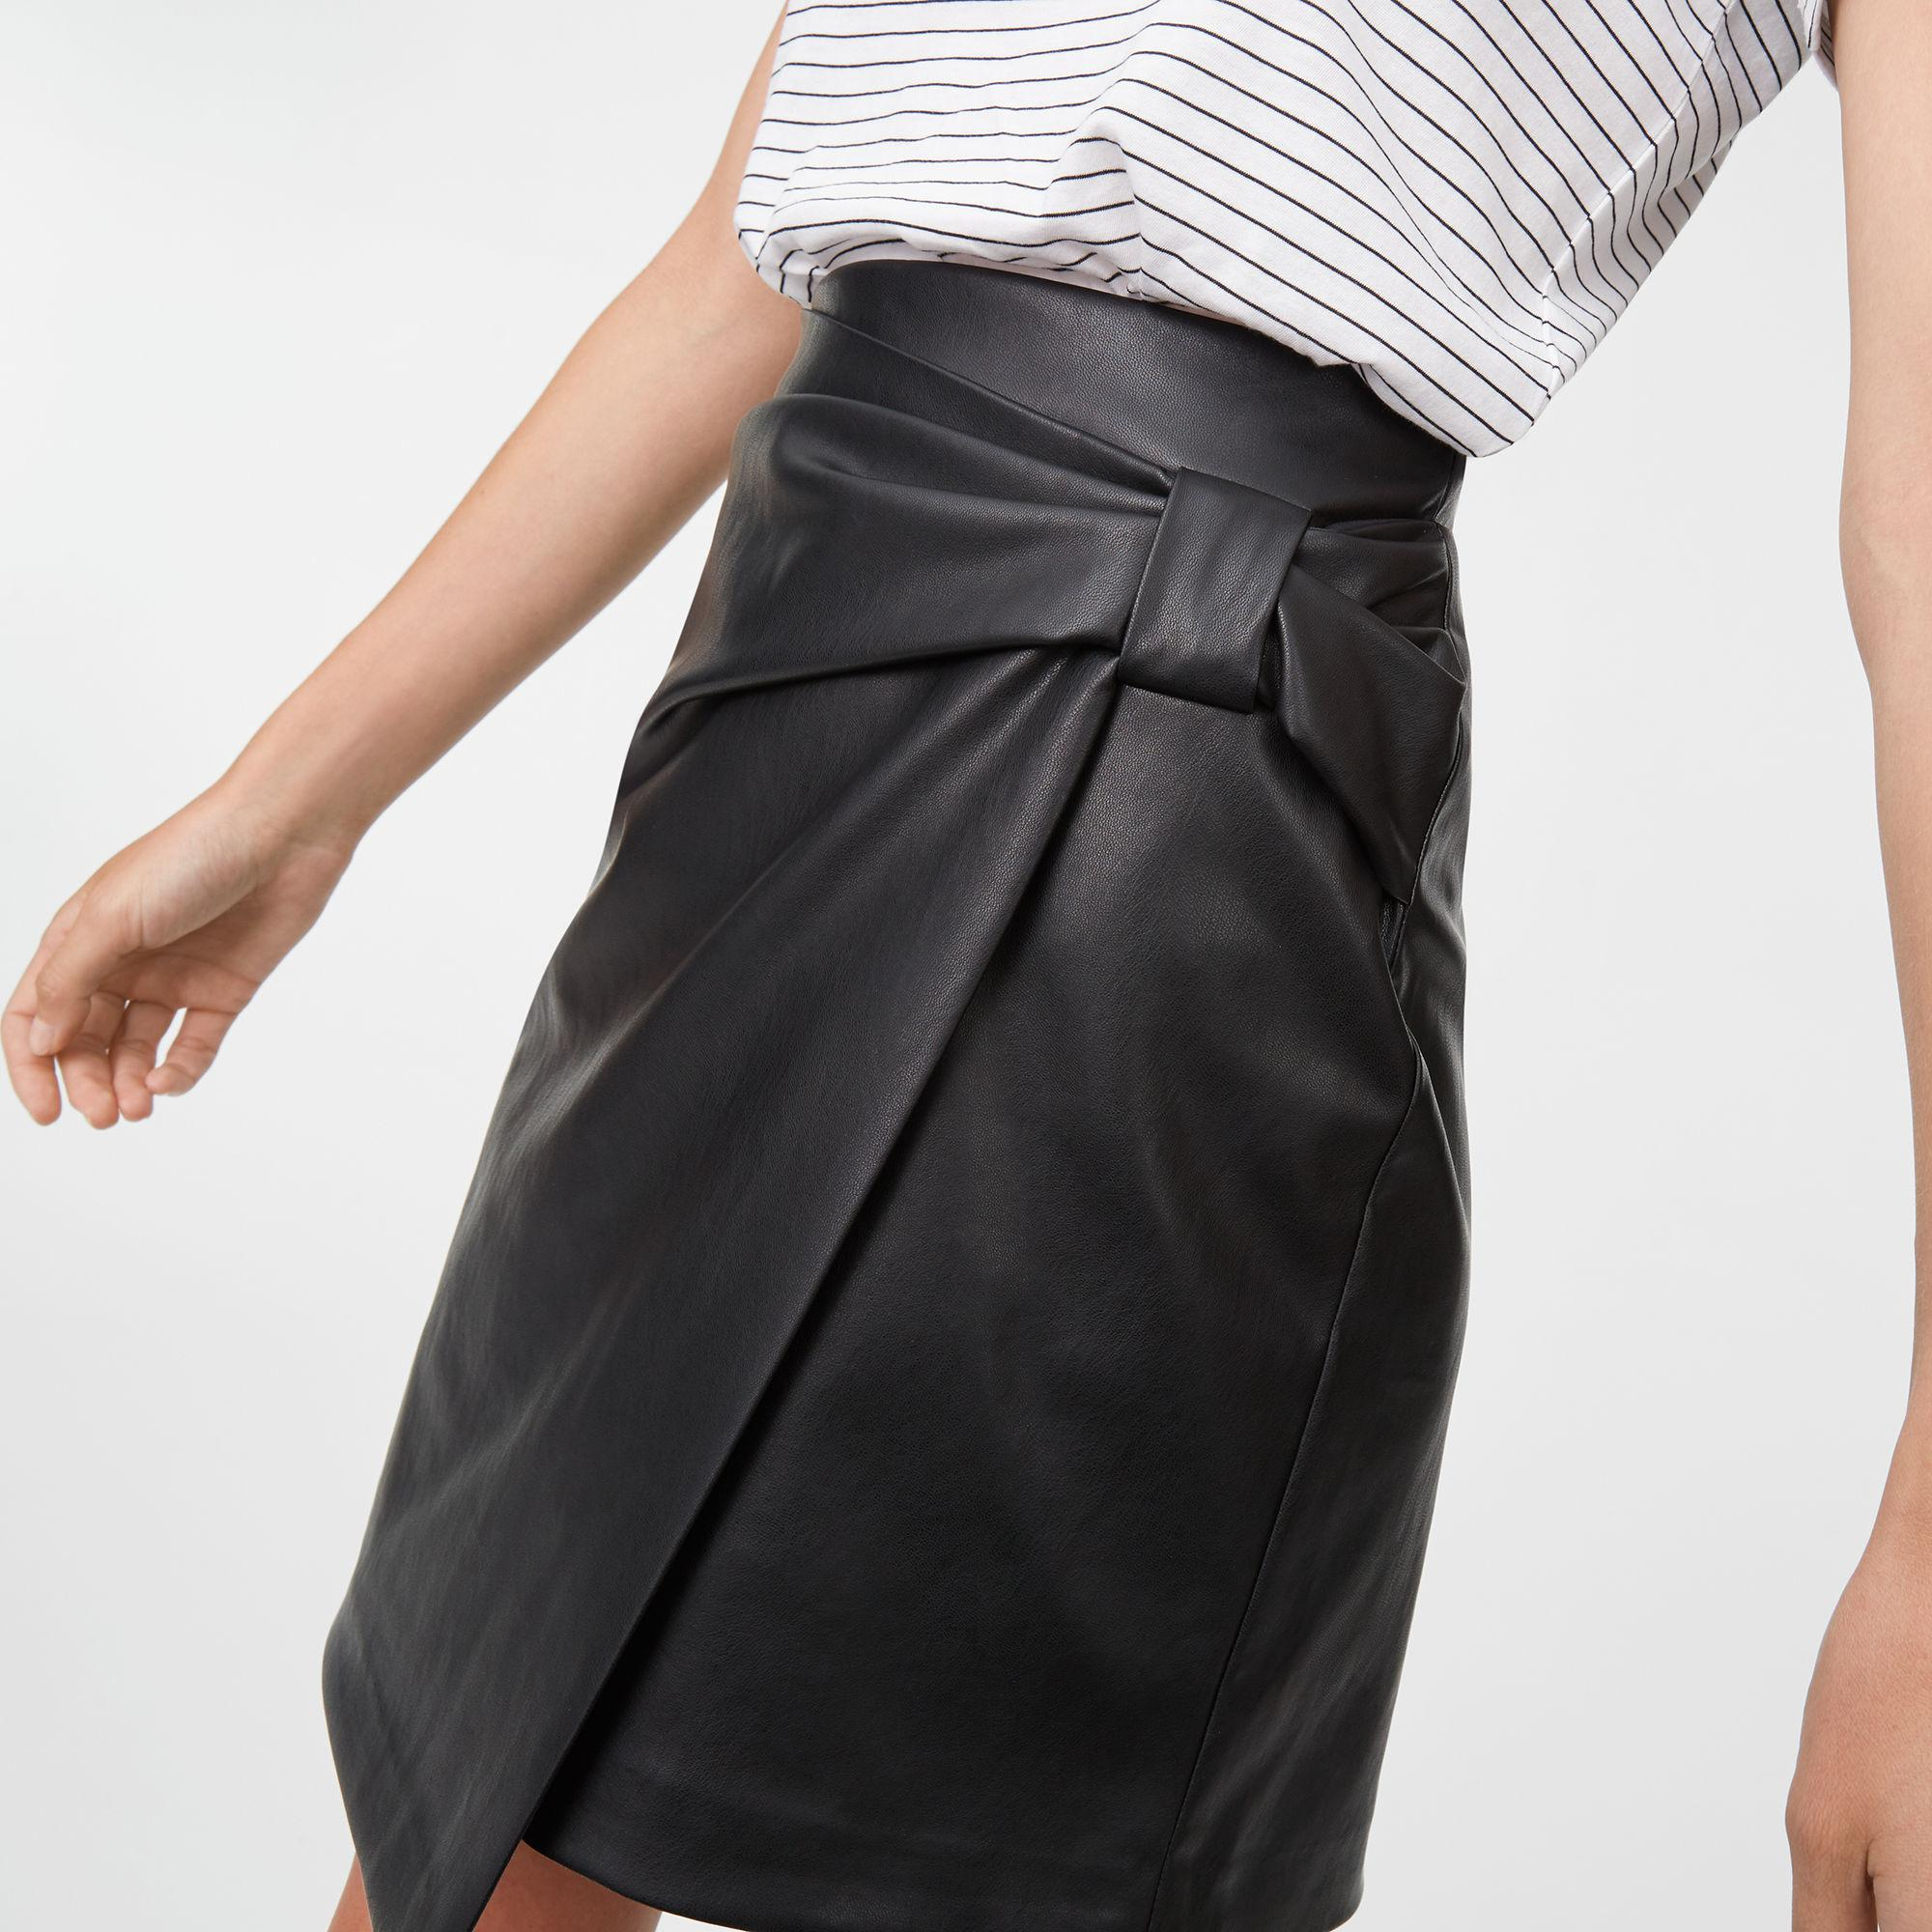 a32465c69b Club Monaco Chavelle Faux Leather Skirt in Black - Lyst